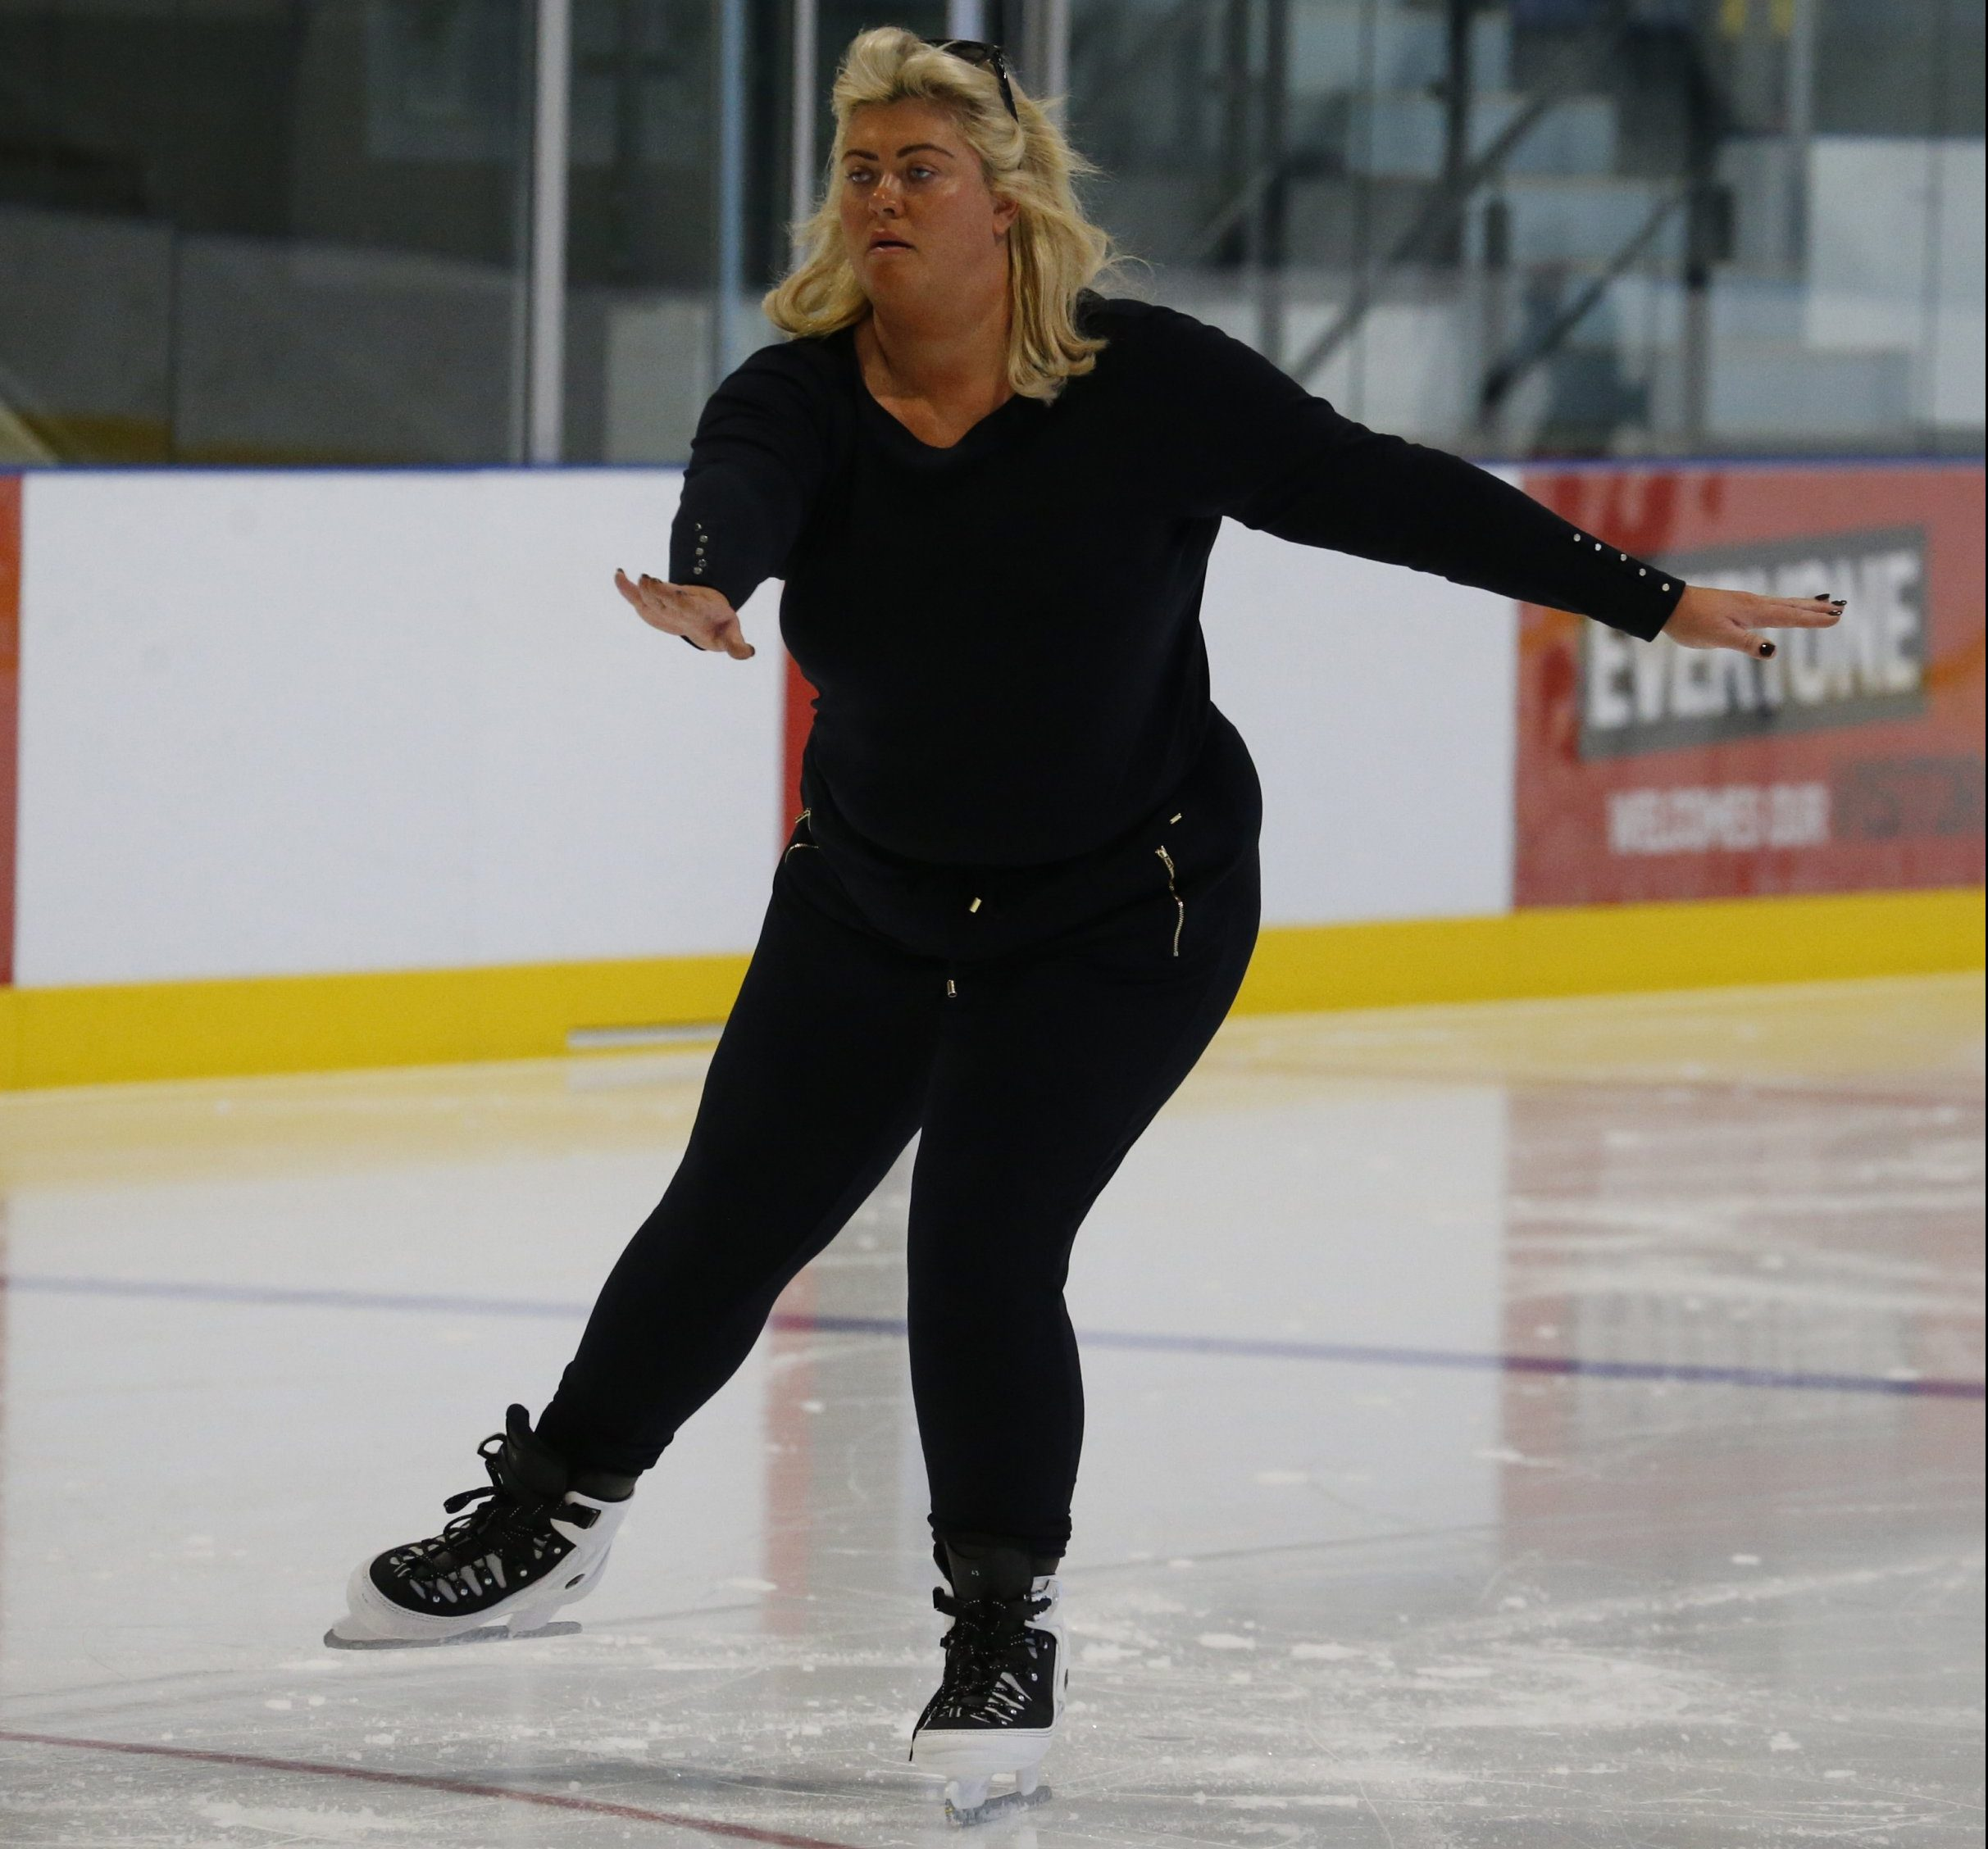 EXCLUSIVE: * Min Web / Online Fee 300 GBP For Set * * Min Print Fee 300 GBP PP * Double For Pg1 * Gemma Collins Seen Practicing For Dancing On Ice With Her Skate Coach. Pictured: Gemma Collins Ref: SPL5033689 161018 EXCLUSIVE Picture by: Ralph / SplashNews.com * Min Web / Online Fee 300 GBP For Set * * Min Print Fee 300 GBP PP * Double For Pg1 * Splash News and Pictures Los Angeles: 310-821-2666 New York: 212-619-2666 London: 0207 644 7656 Milan: +39 02 4399 8577 Sydney: +61 02 9240 7700 photodesk@splashnews.com World Rights